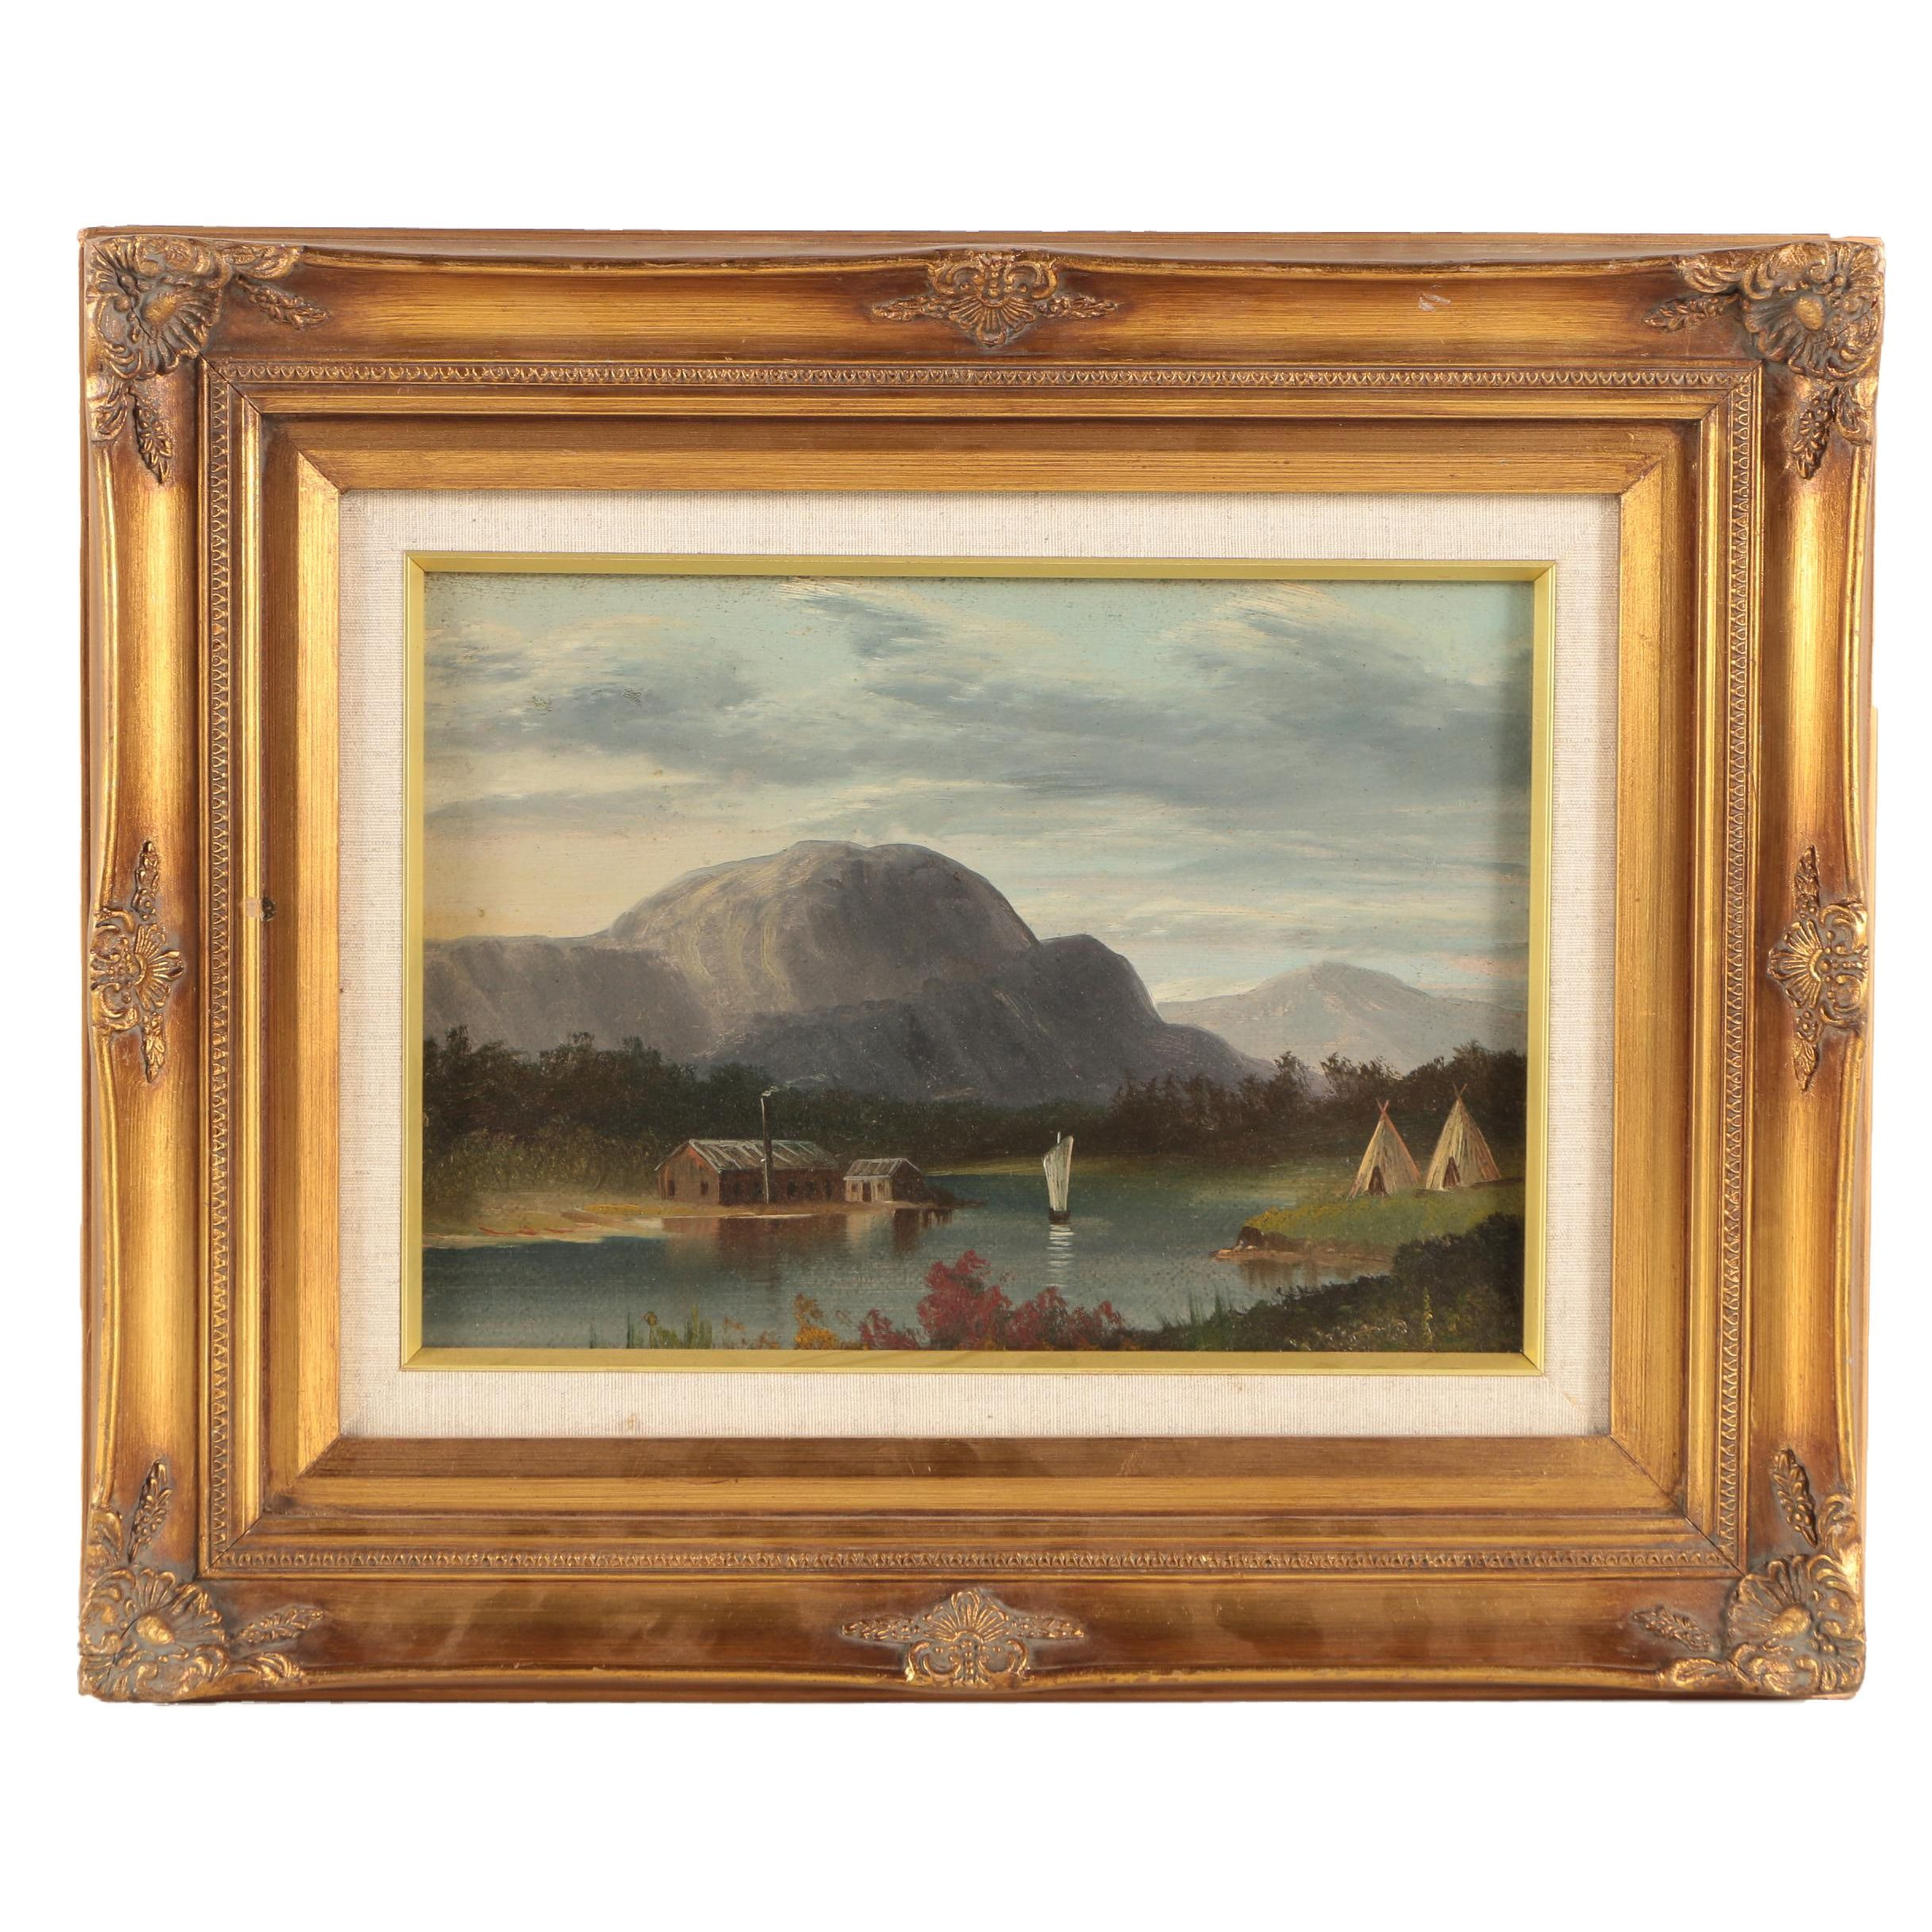 Oil Painting on Board of a Landscape